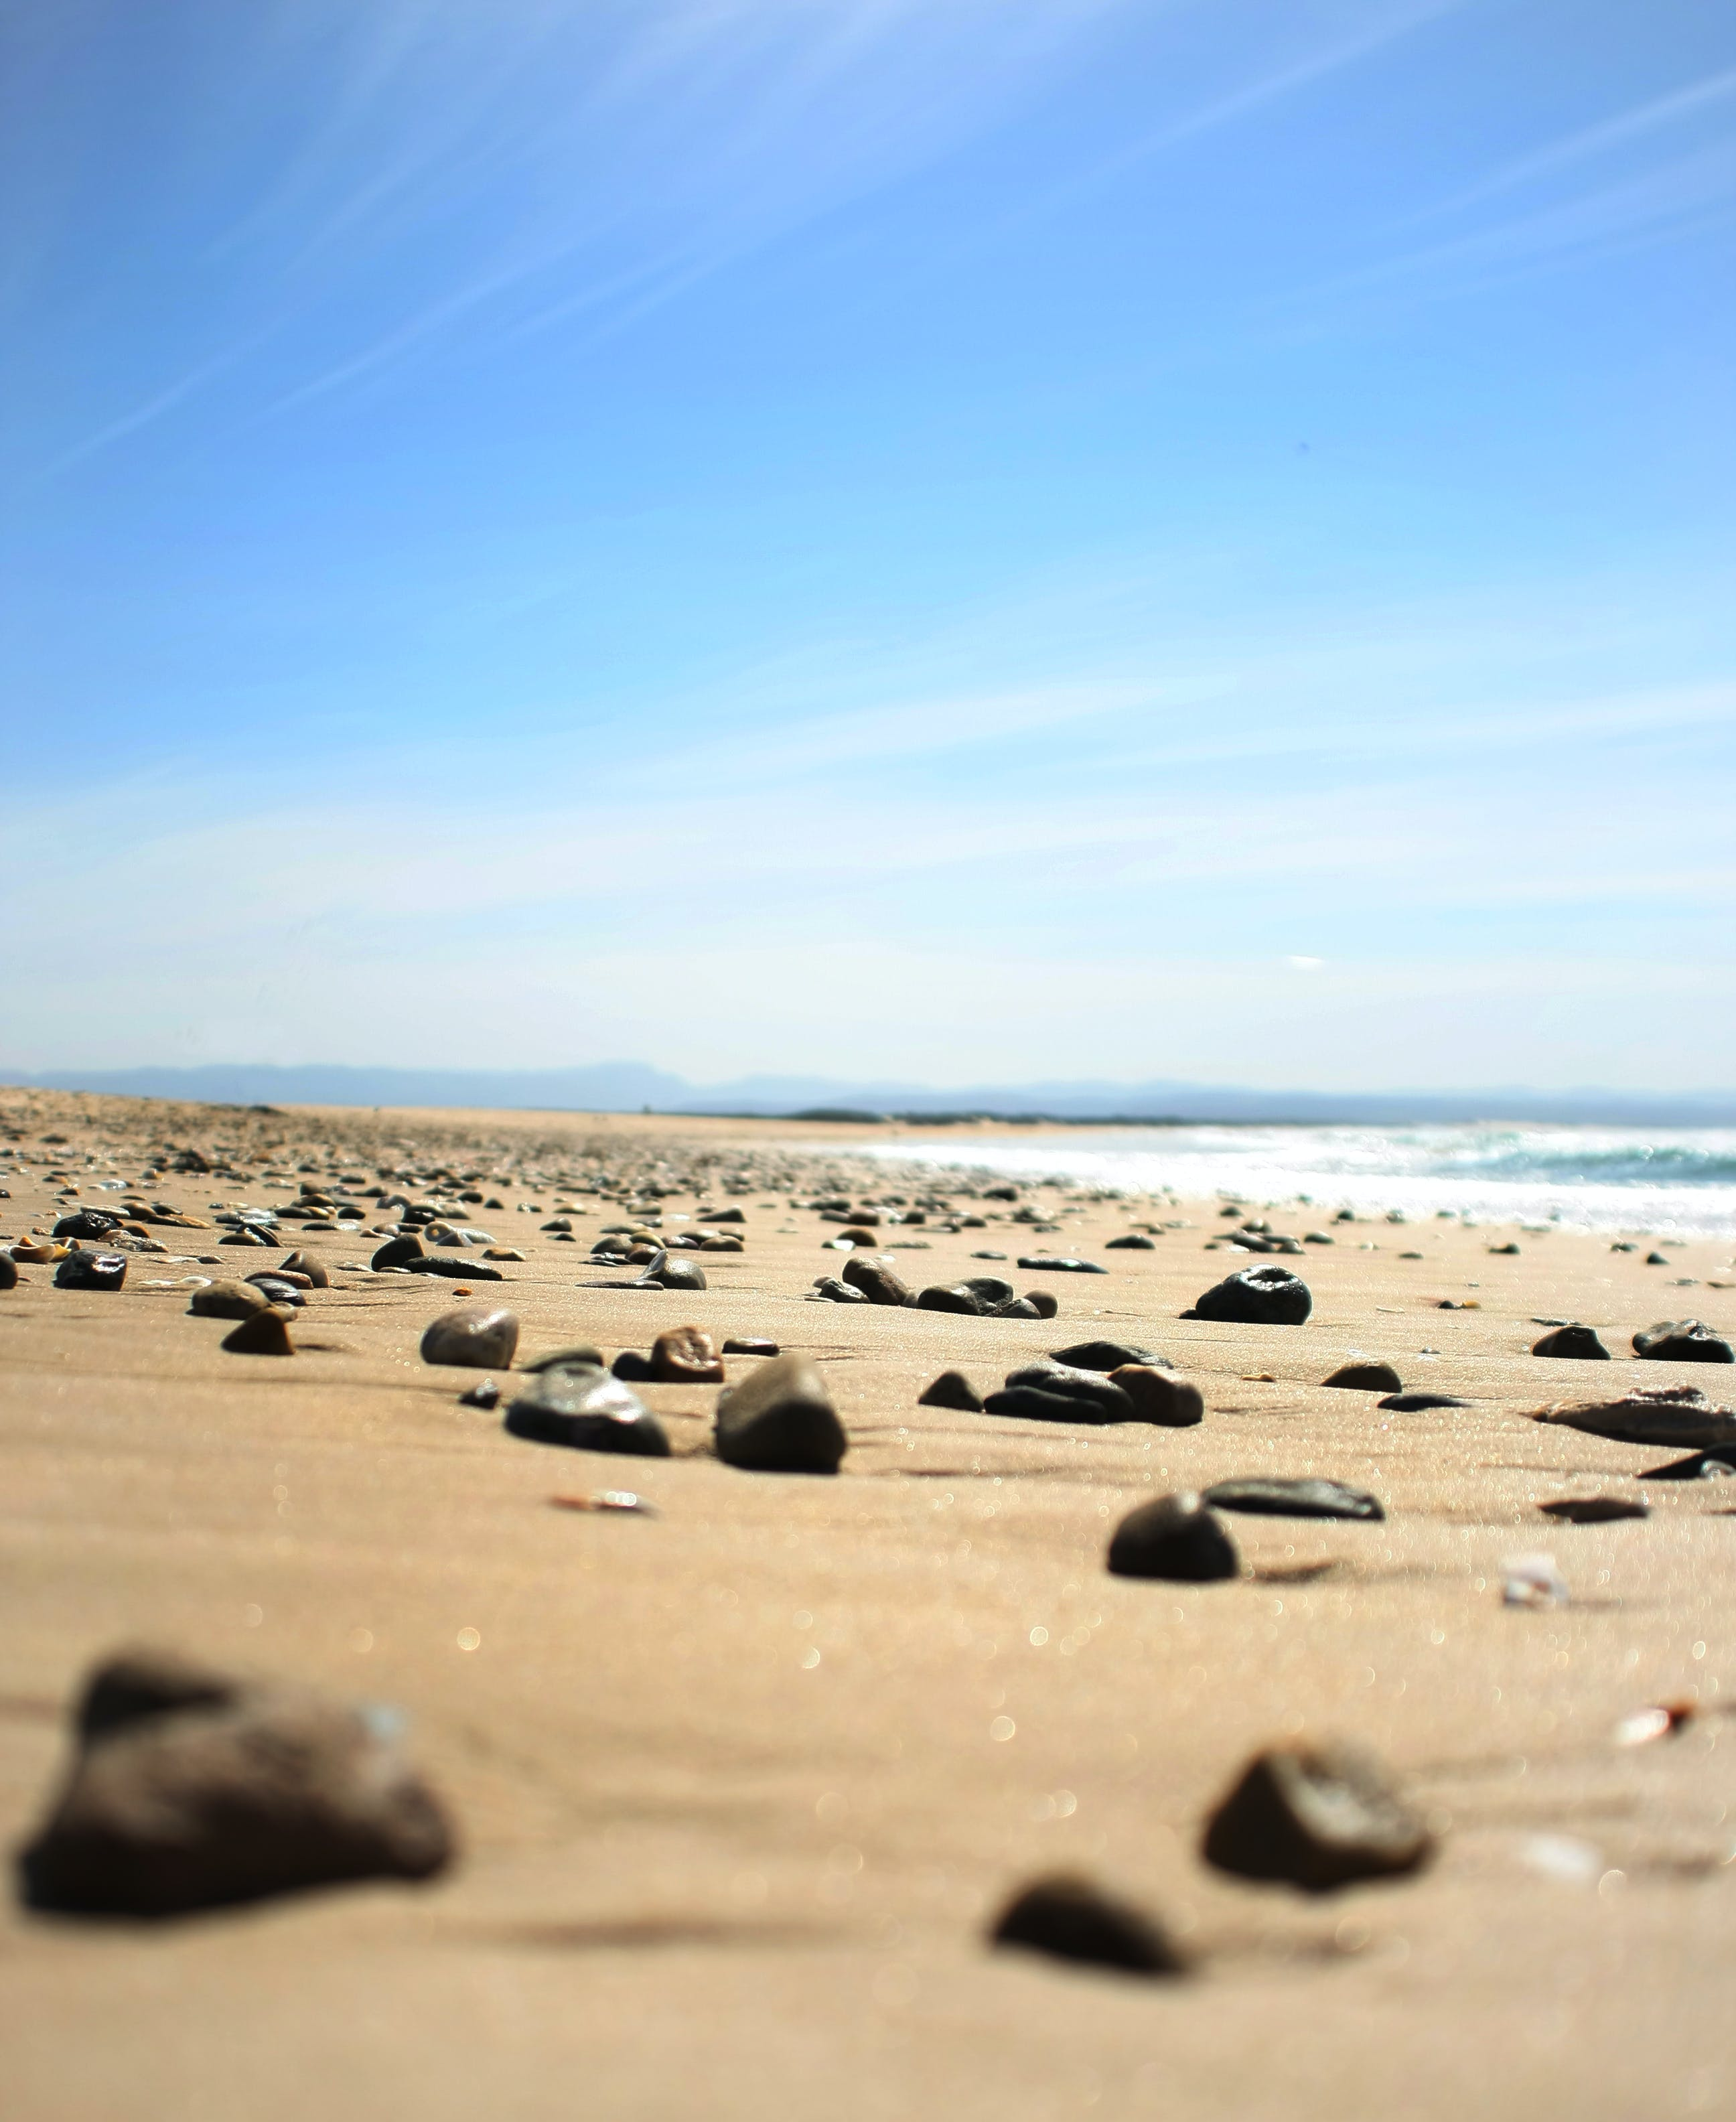 Brown Sand Seashore With Brown Pebbles Under White and Blue Cloudy Skies